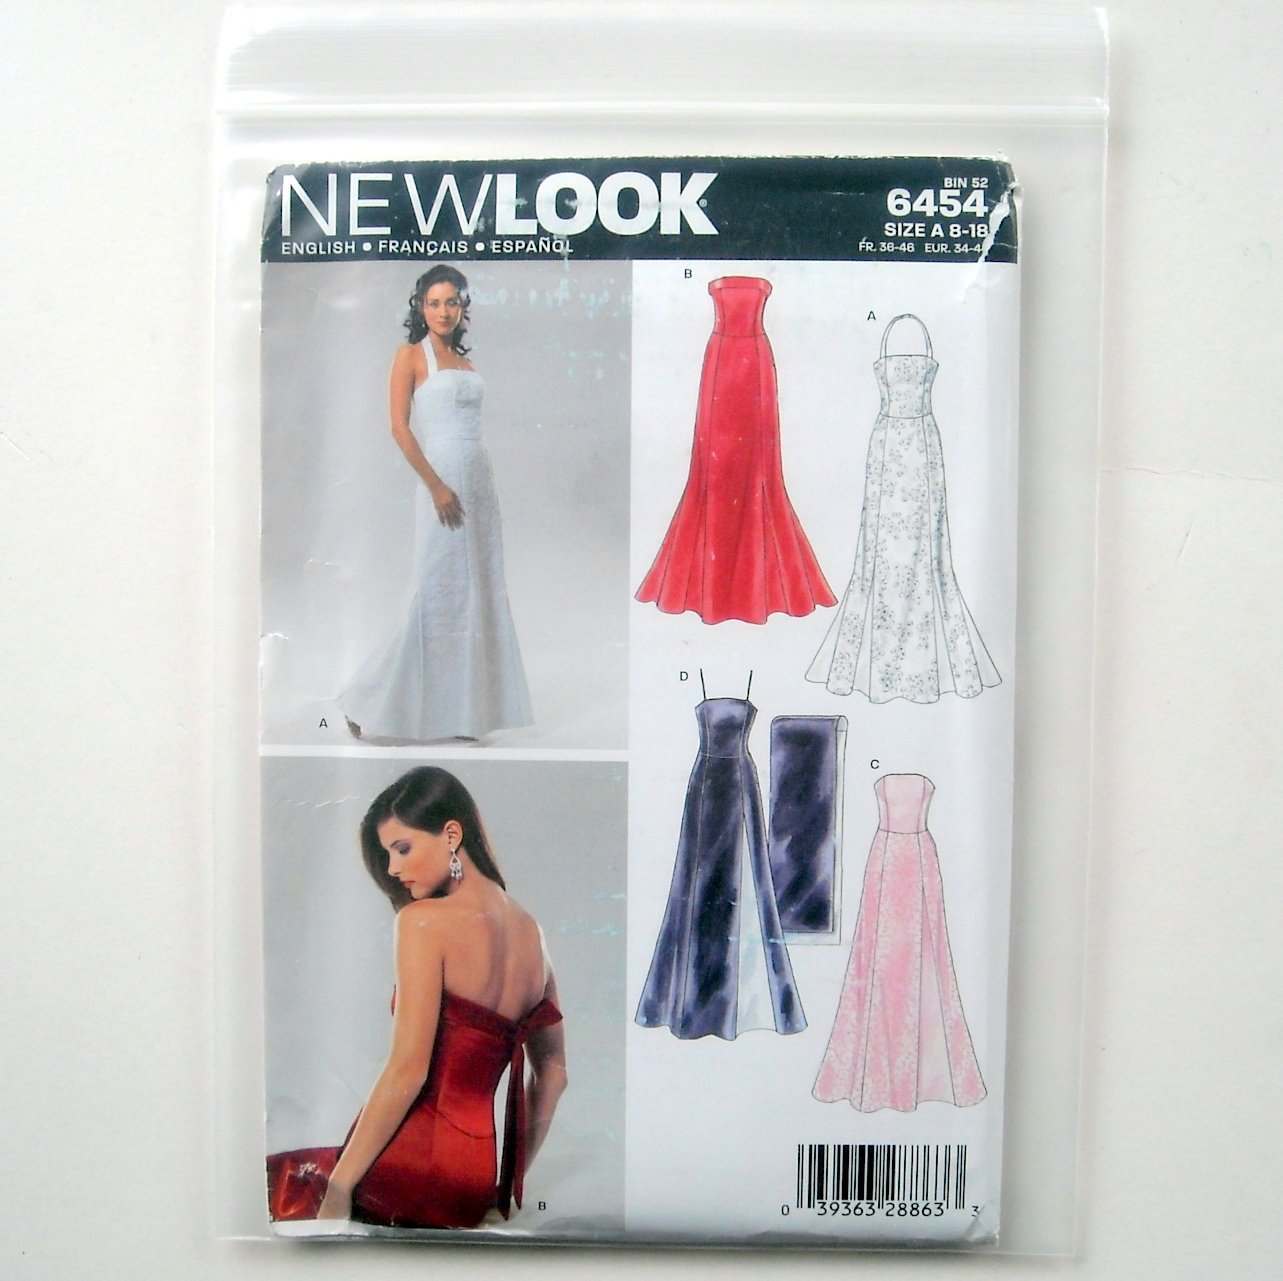 Misses Special Occasion Dresses Gowns Shawl Six Sizes In One Simplicity New Look Sewing Pattern 6454